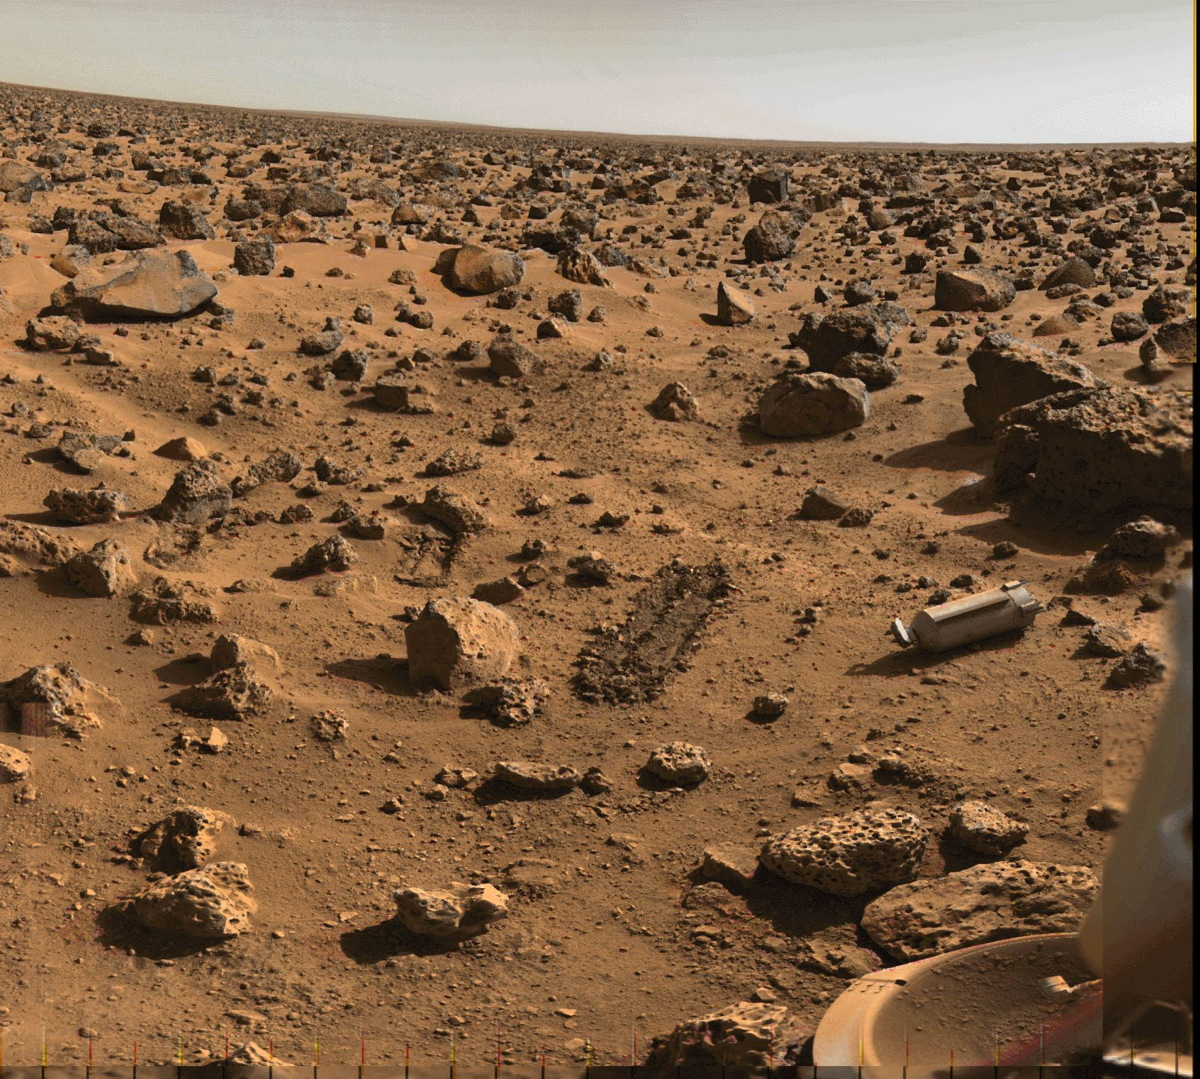 Is Mars Humid Enough to Support Life?